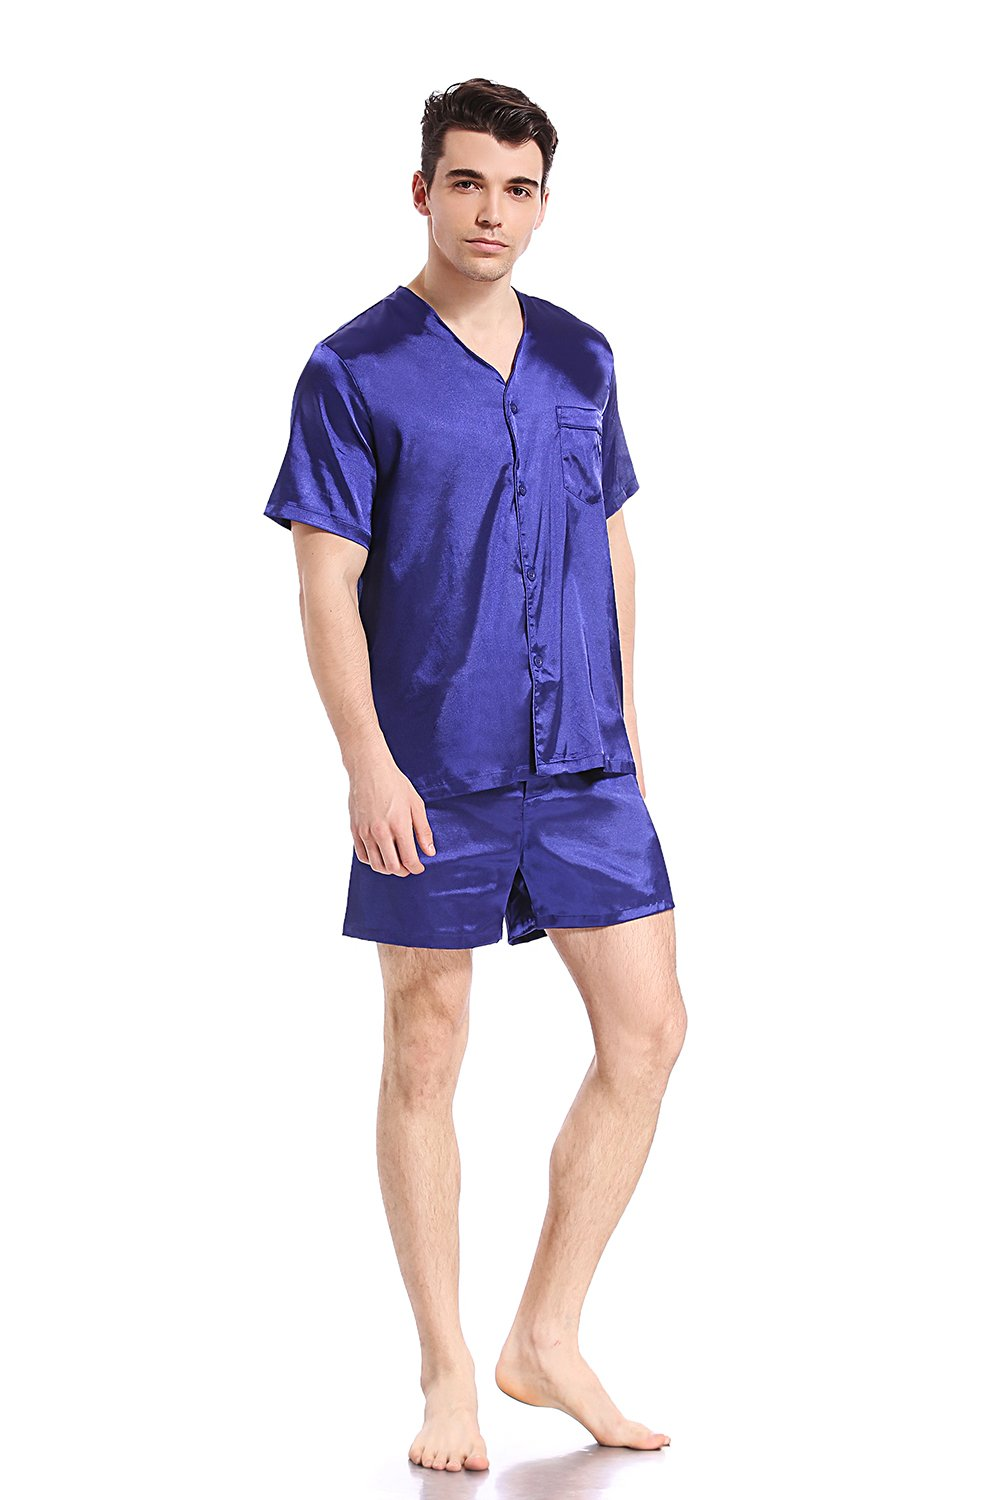 Like2sea Summer Silky Satin Pajamas for Men, Short V-Neck Button Down PJ Set with Mask, Blue, XL by Like2sea (Image #2)